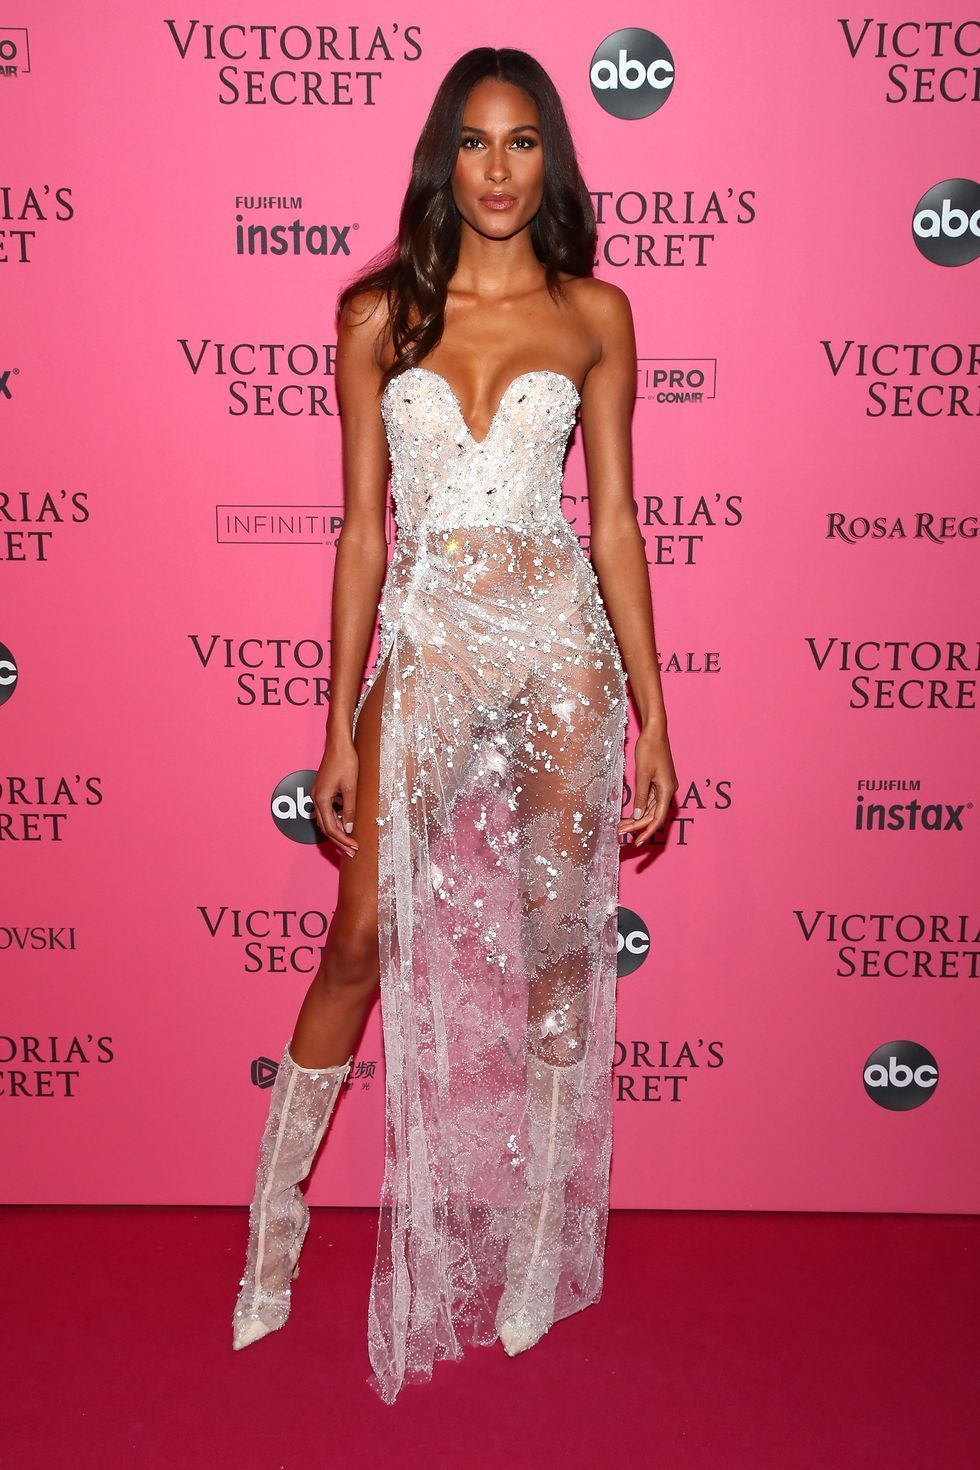 The Hottest Looks from the Victoria's Secret Show After